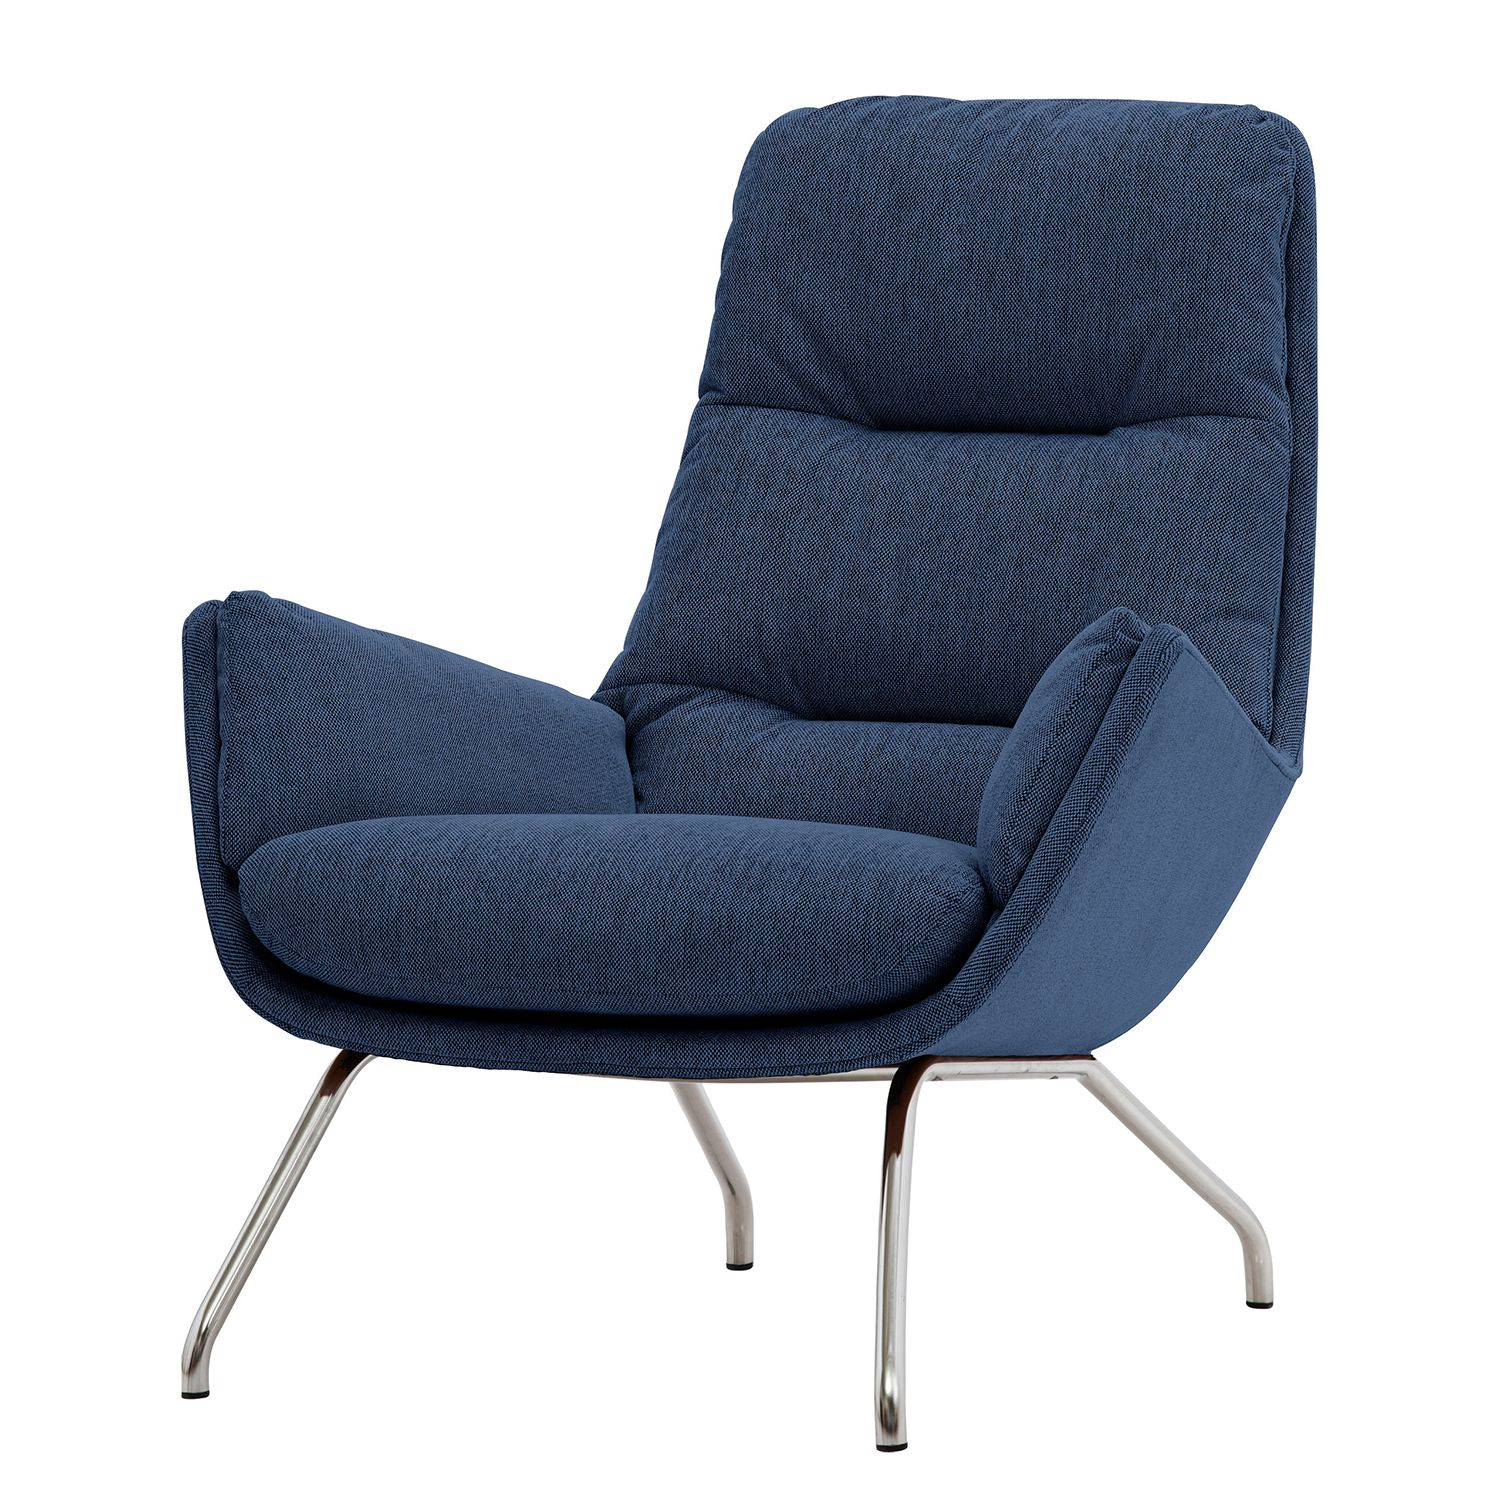 Sessel Garbo I - Webstoff - Chrom - Stoff Anda II Blau